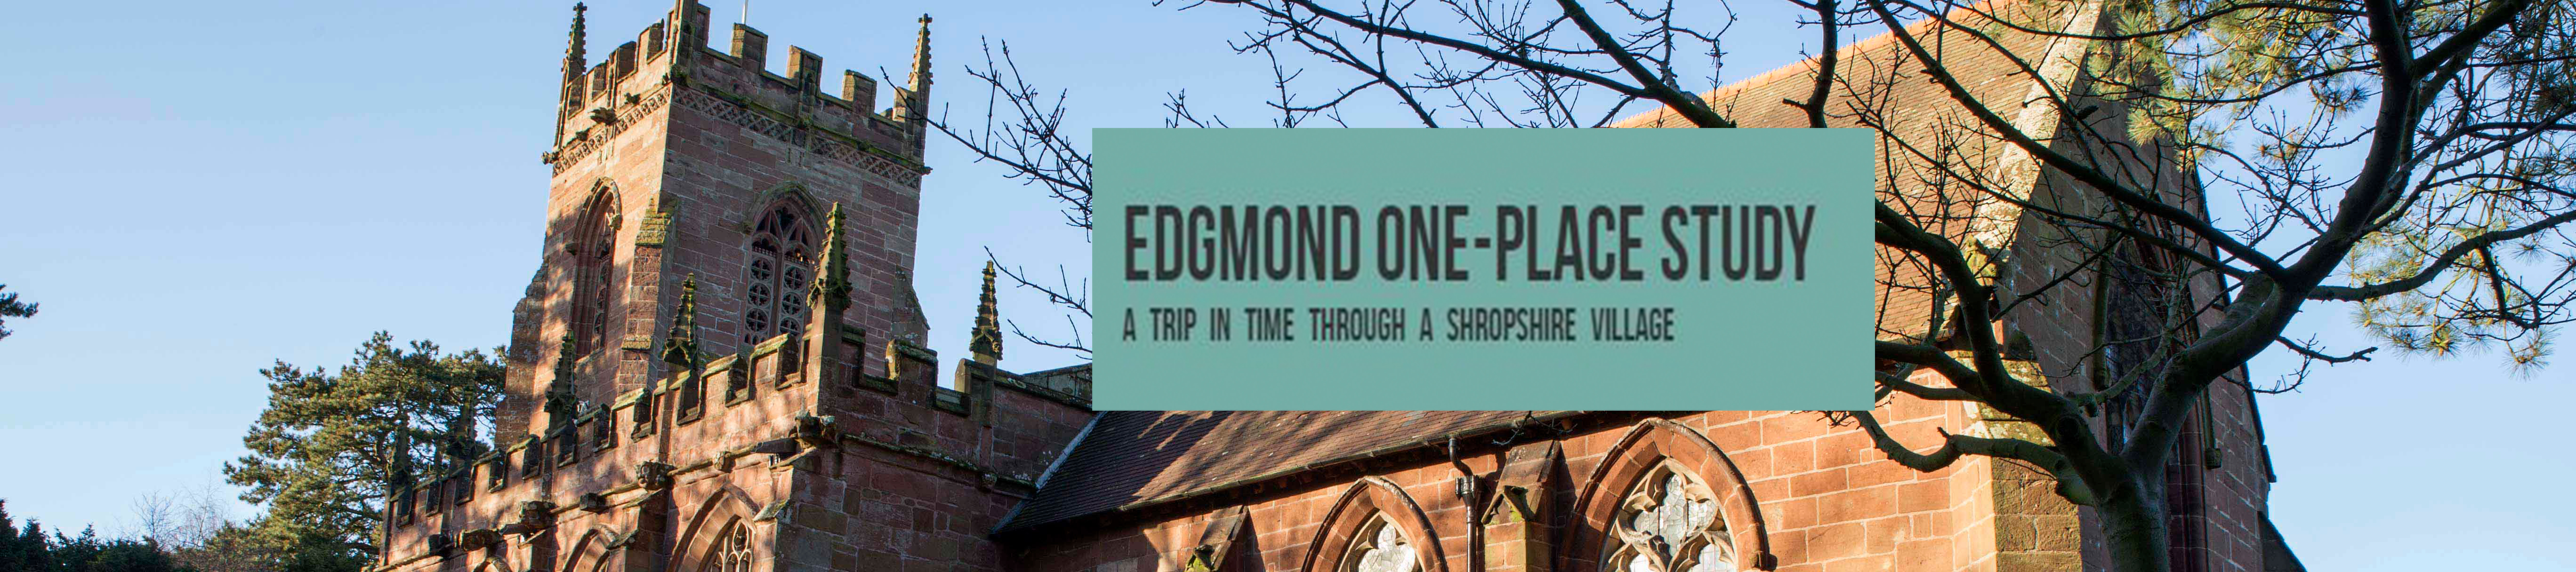 Edgmond One-Place Study